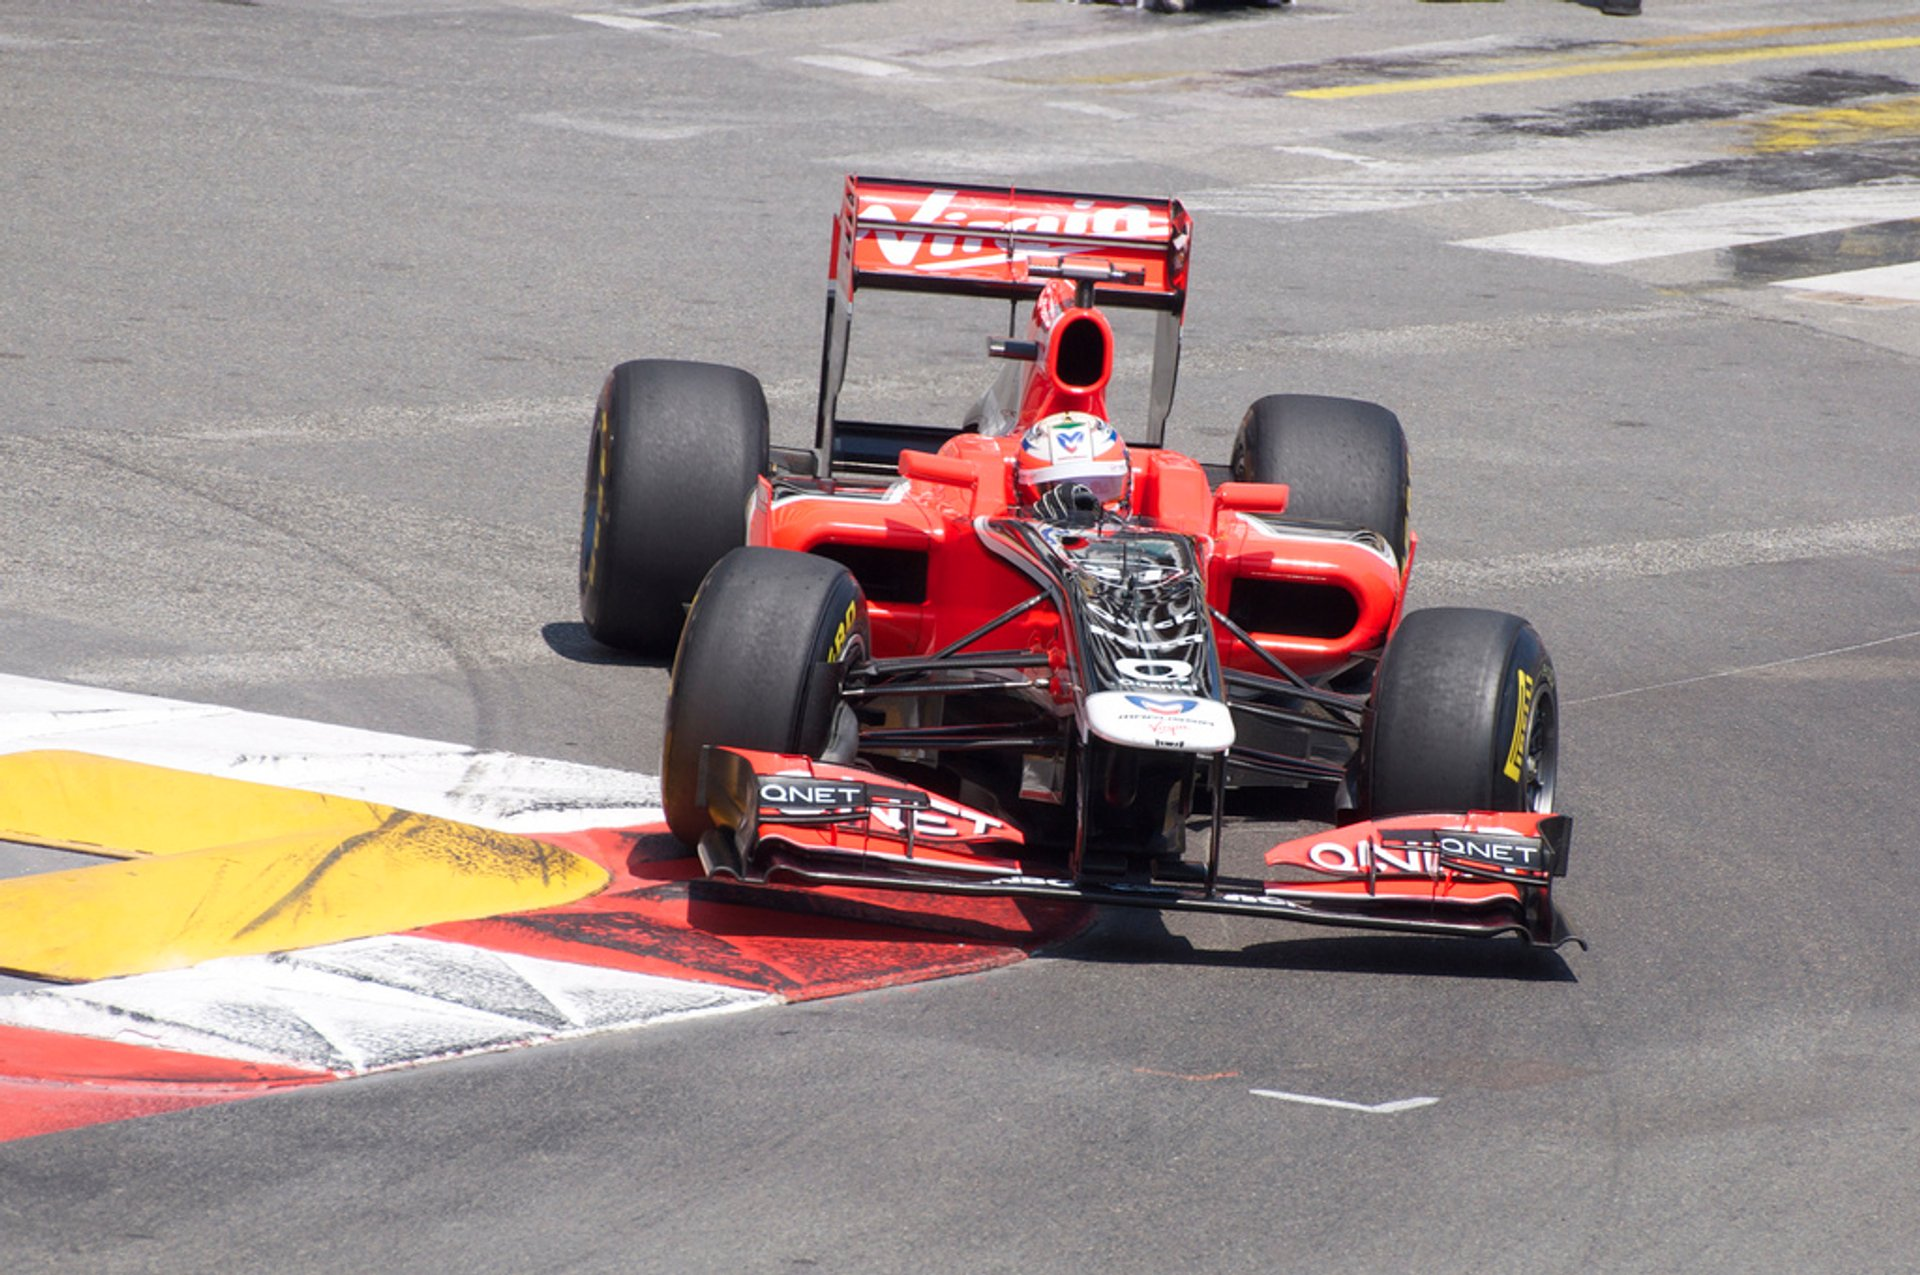 Monaco Grand Prix in Provence & French Riviera 2020 - Best Time